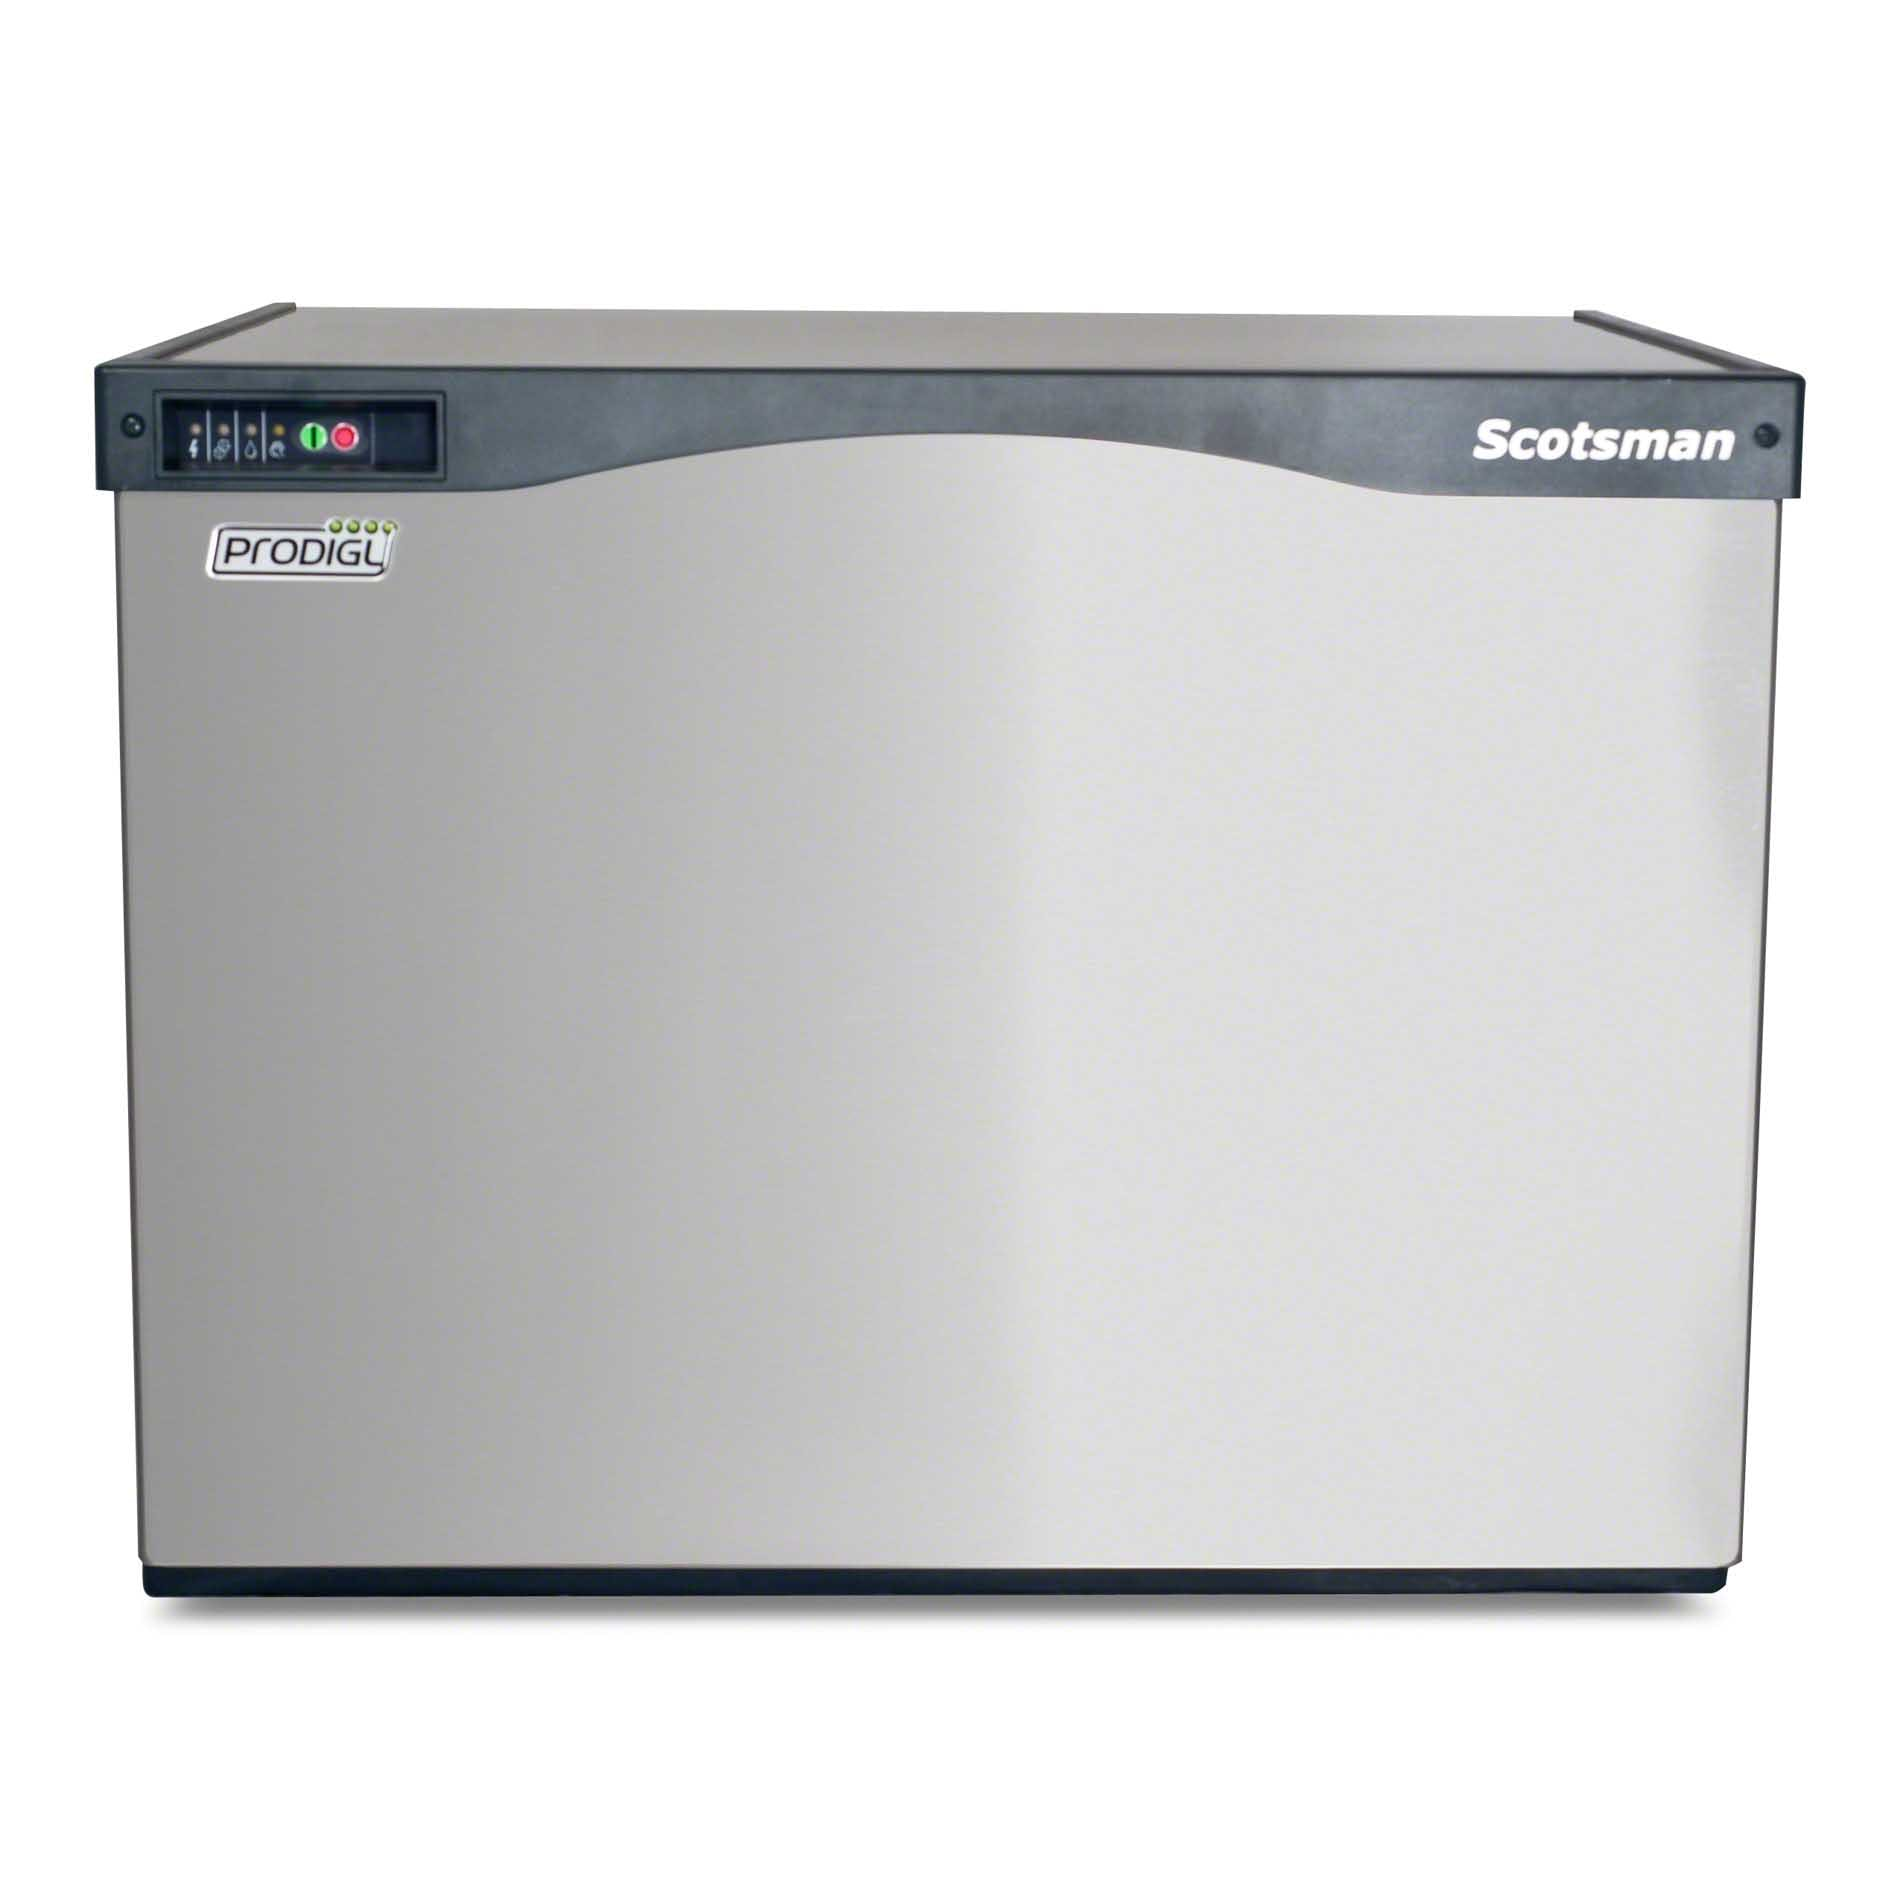 Scotsman - C0630SW-32A 722 lb Half Size Cube Ice Machine - Prodigy Series Ice machine sold by Food Service Warehouse